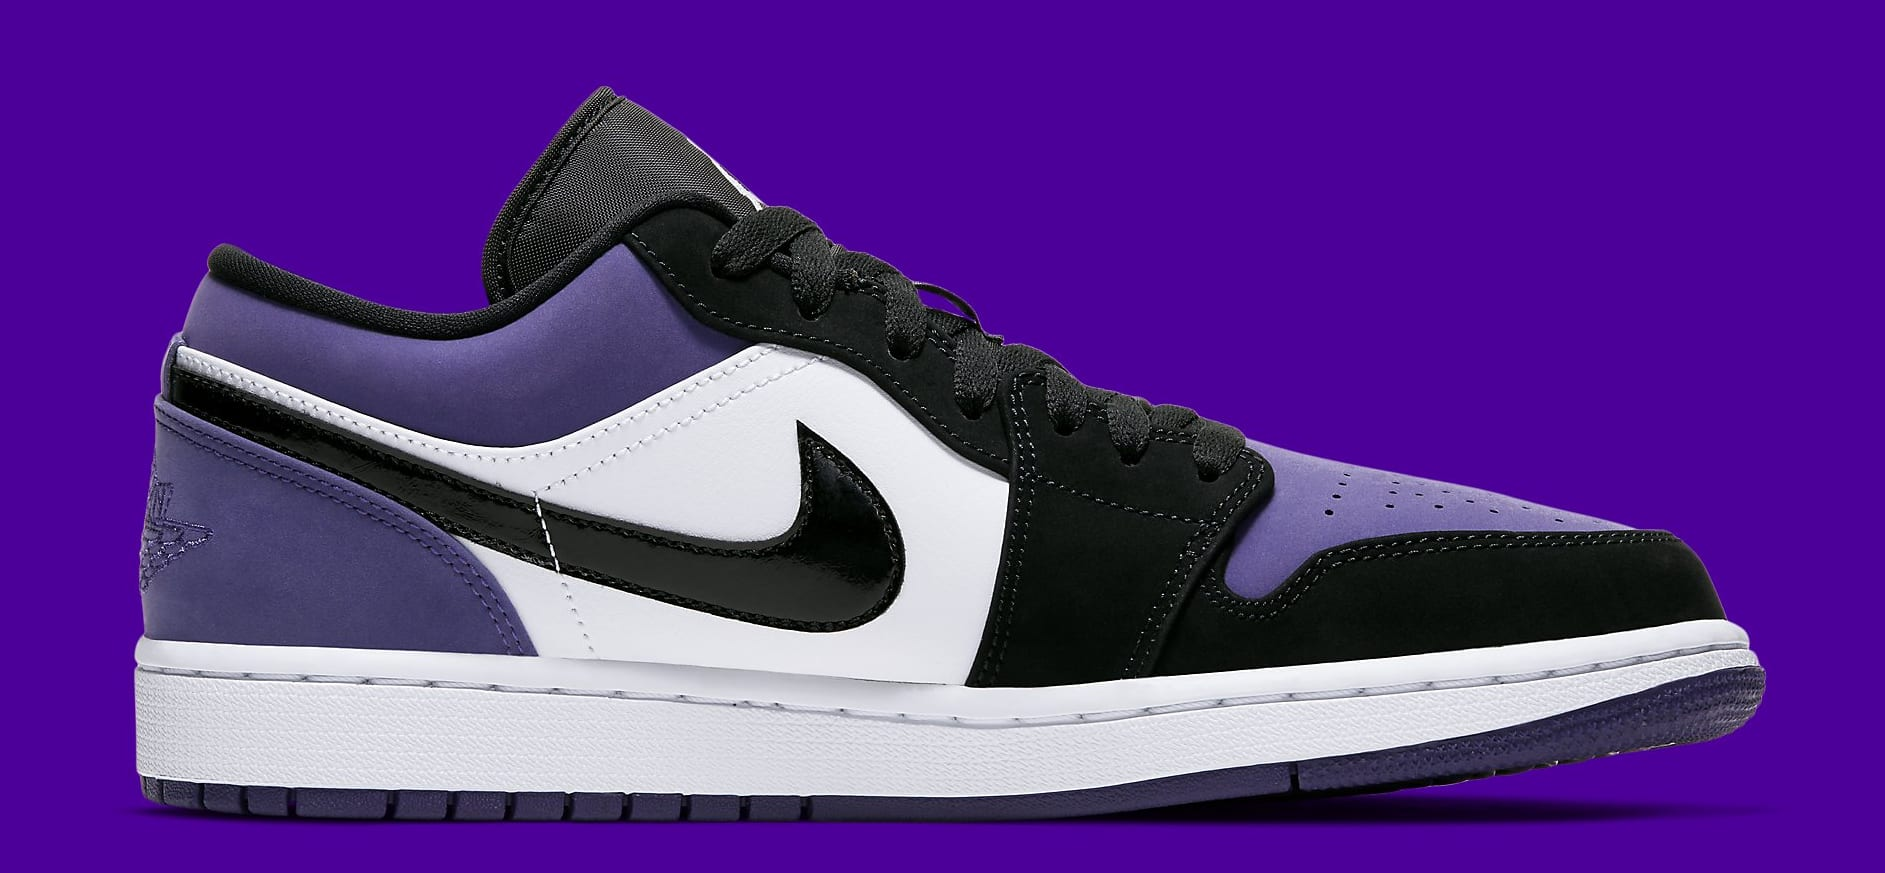 air-jordan-1-low-court-purple-553558-125-medial